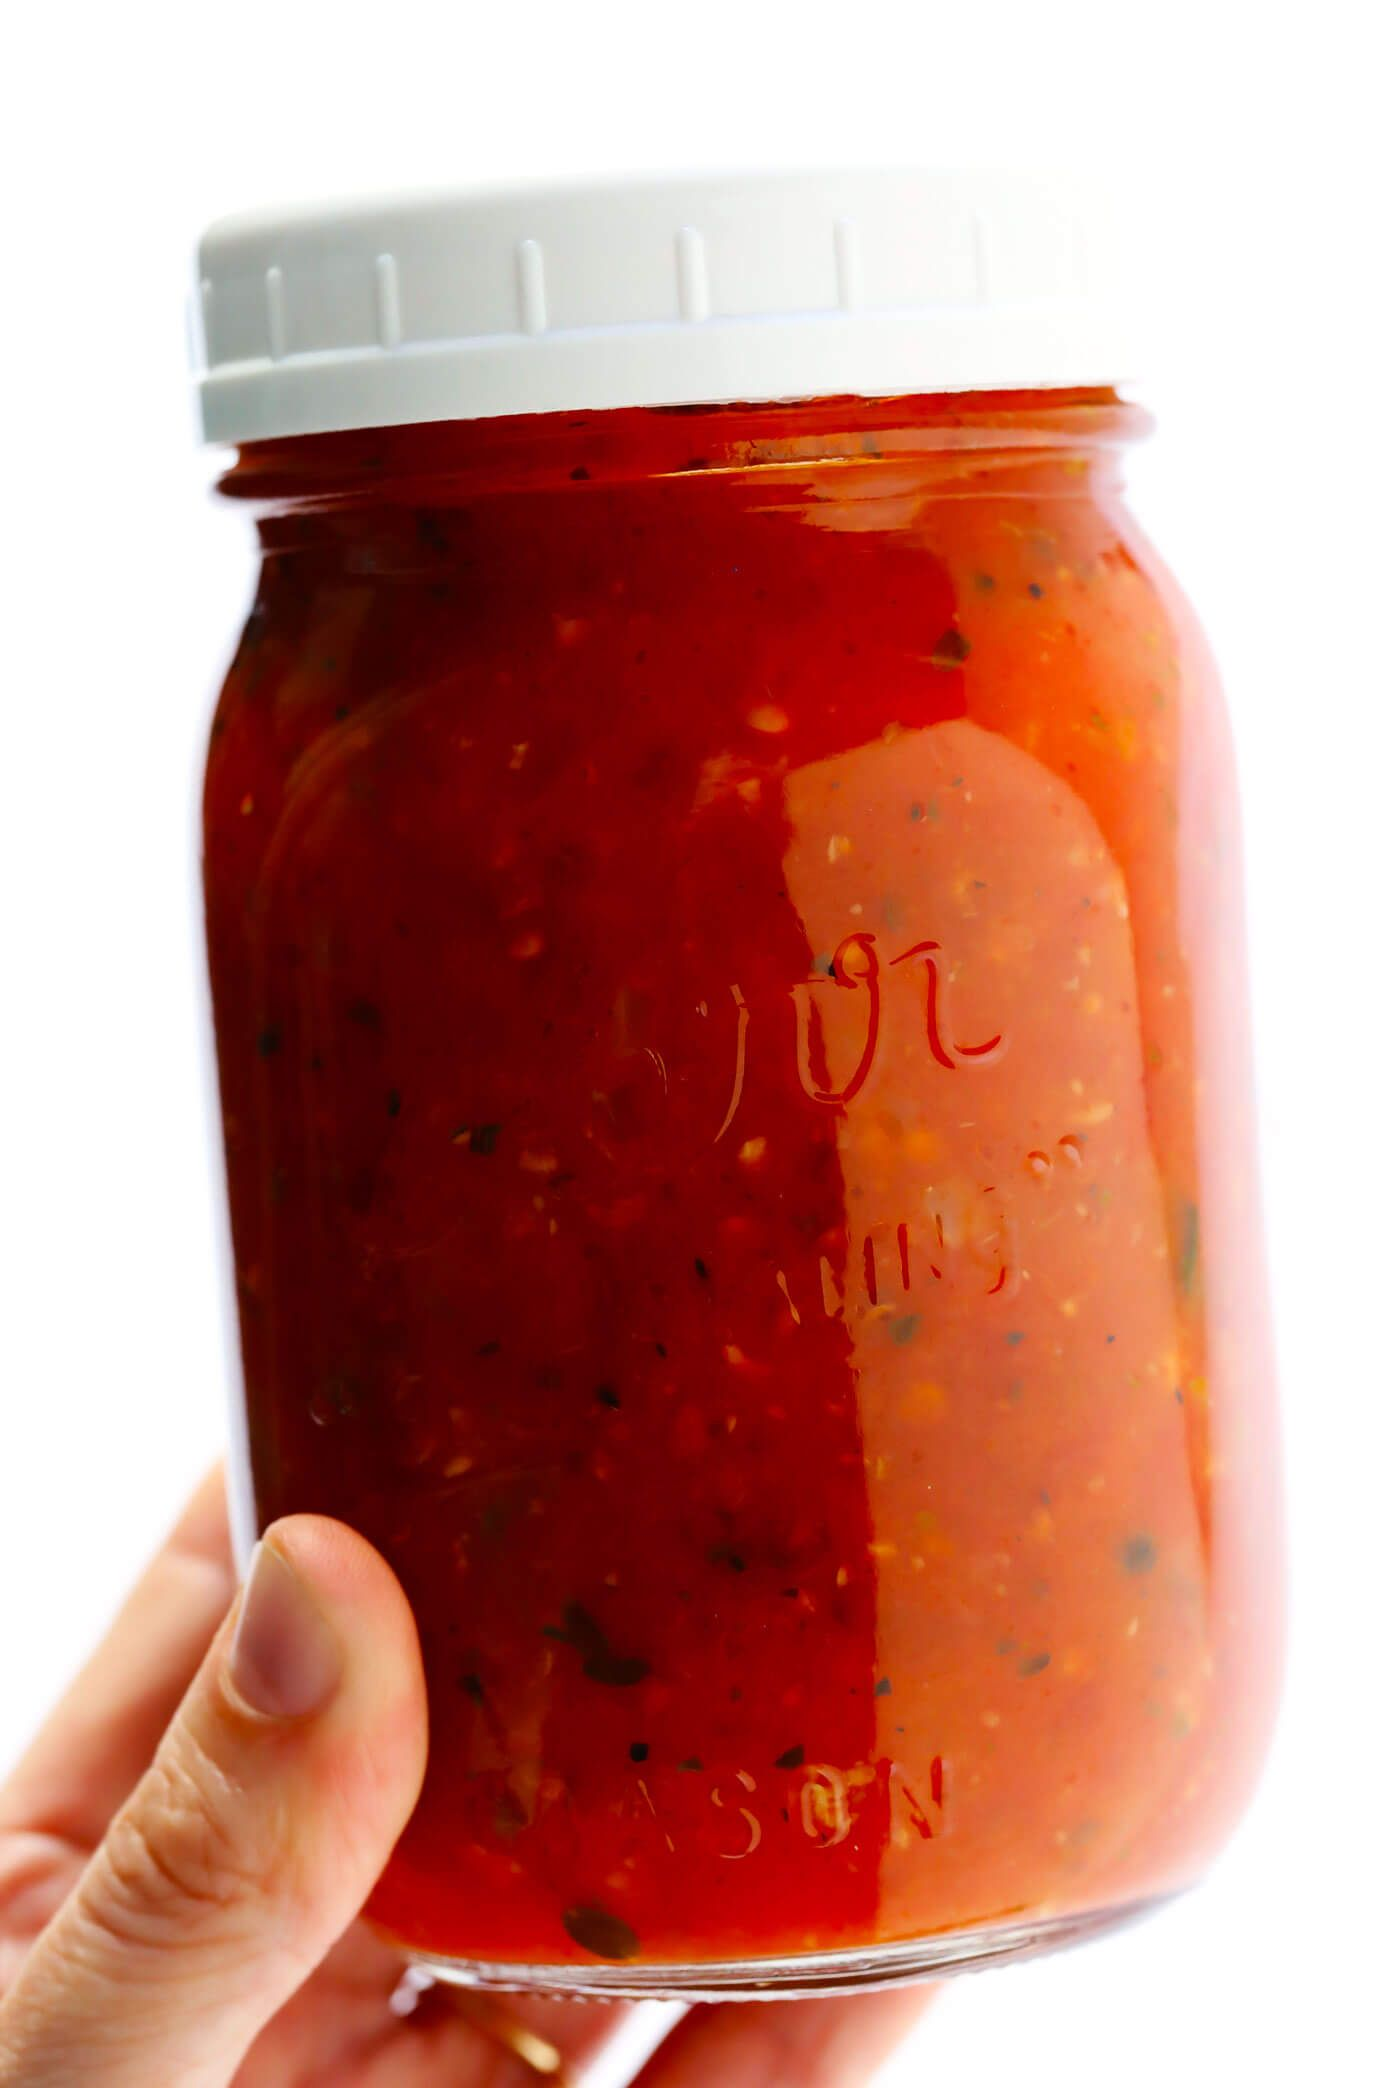 This homemade marinara sauce recipe is easy to make, naturally gluten-free and vegan, and slow-simmered with the BEST tomato, basil and garlicky flavors. Serve it with spaghetti, meatballs, pizza, chicken, mussels, eggplant Parmesan, subs, or whatever sounds good!   gimmesomeoven.com #marinara #sauce #tomato #pasta #glutenfree #vegetarian #vegan #healthy #mealprep #freezermeal #dinner